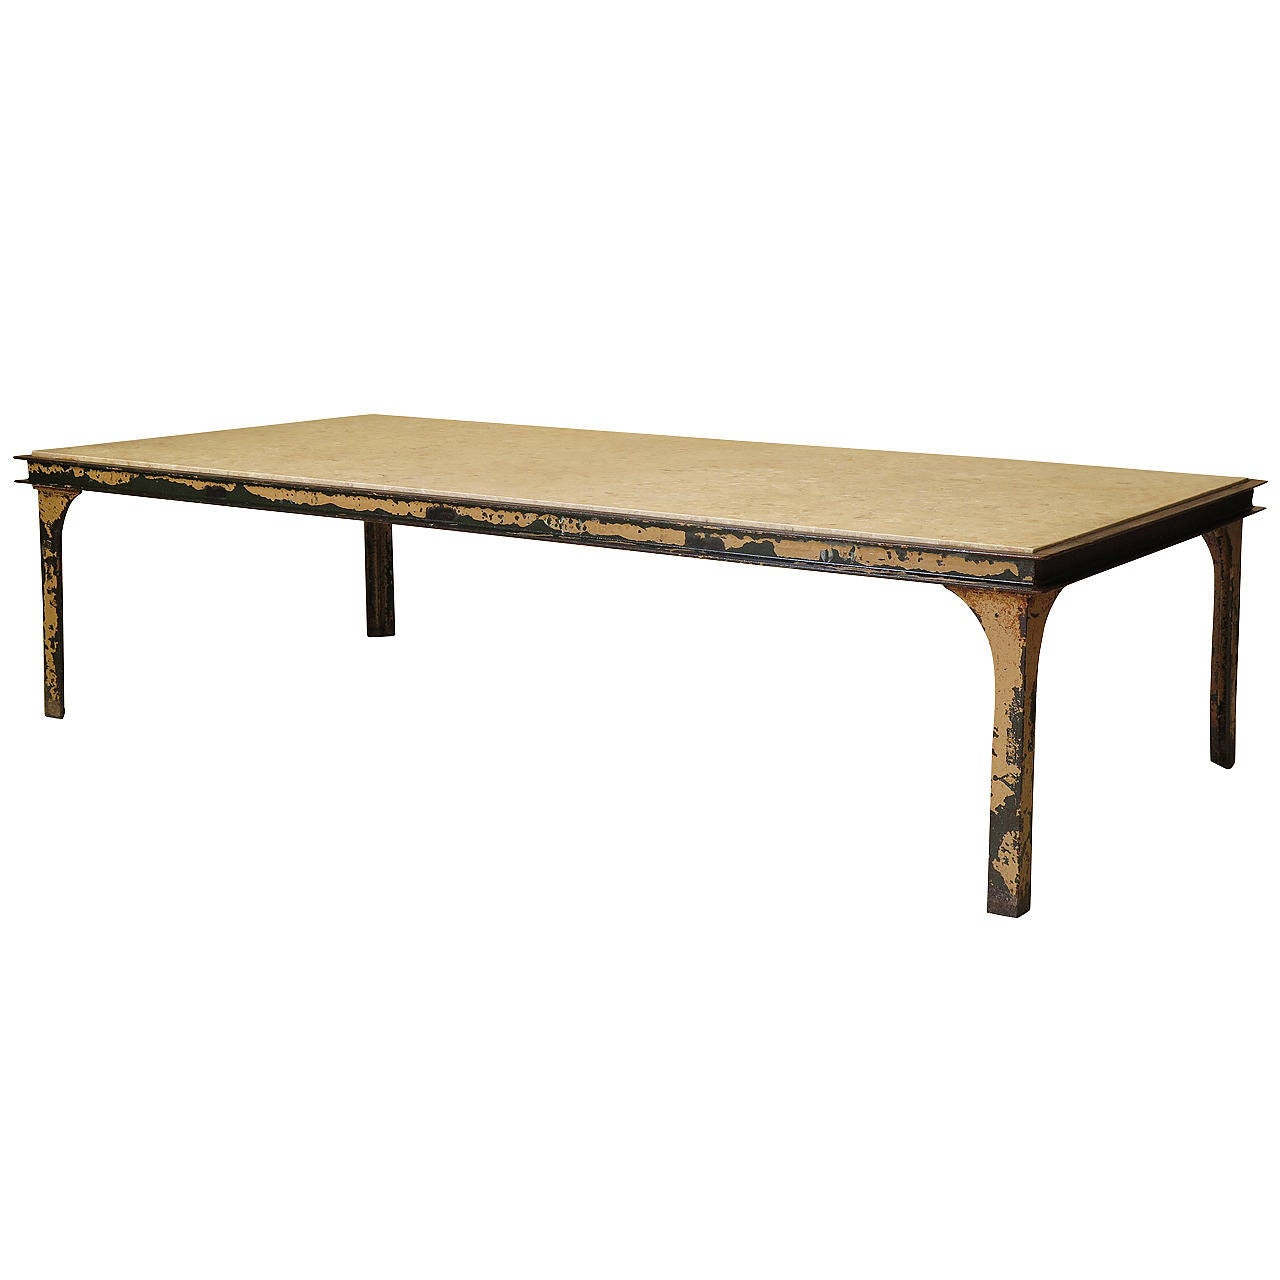 Iron Coffee Tables Large Iron And Stone Coffee Table France 1950s For Sale At 1stdibs